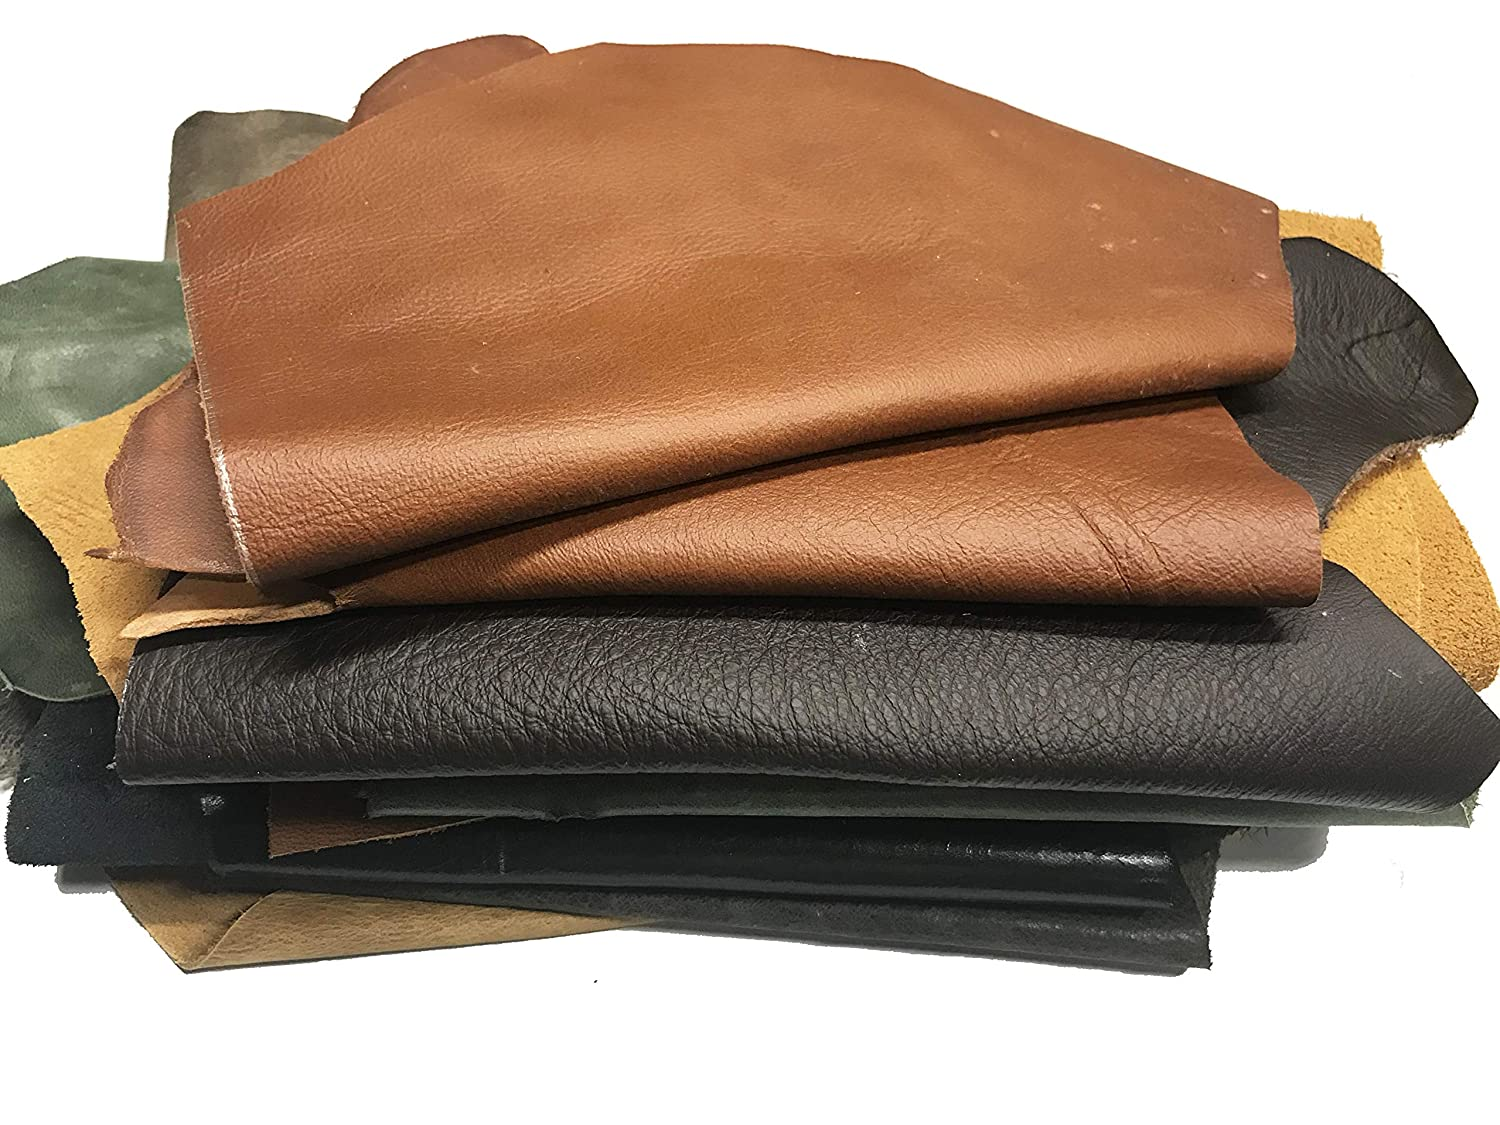 Small Leather Scraps of Various Colors for Jewelry Making and Other Small Crafts 2 lbs